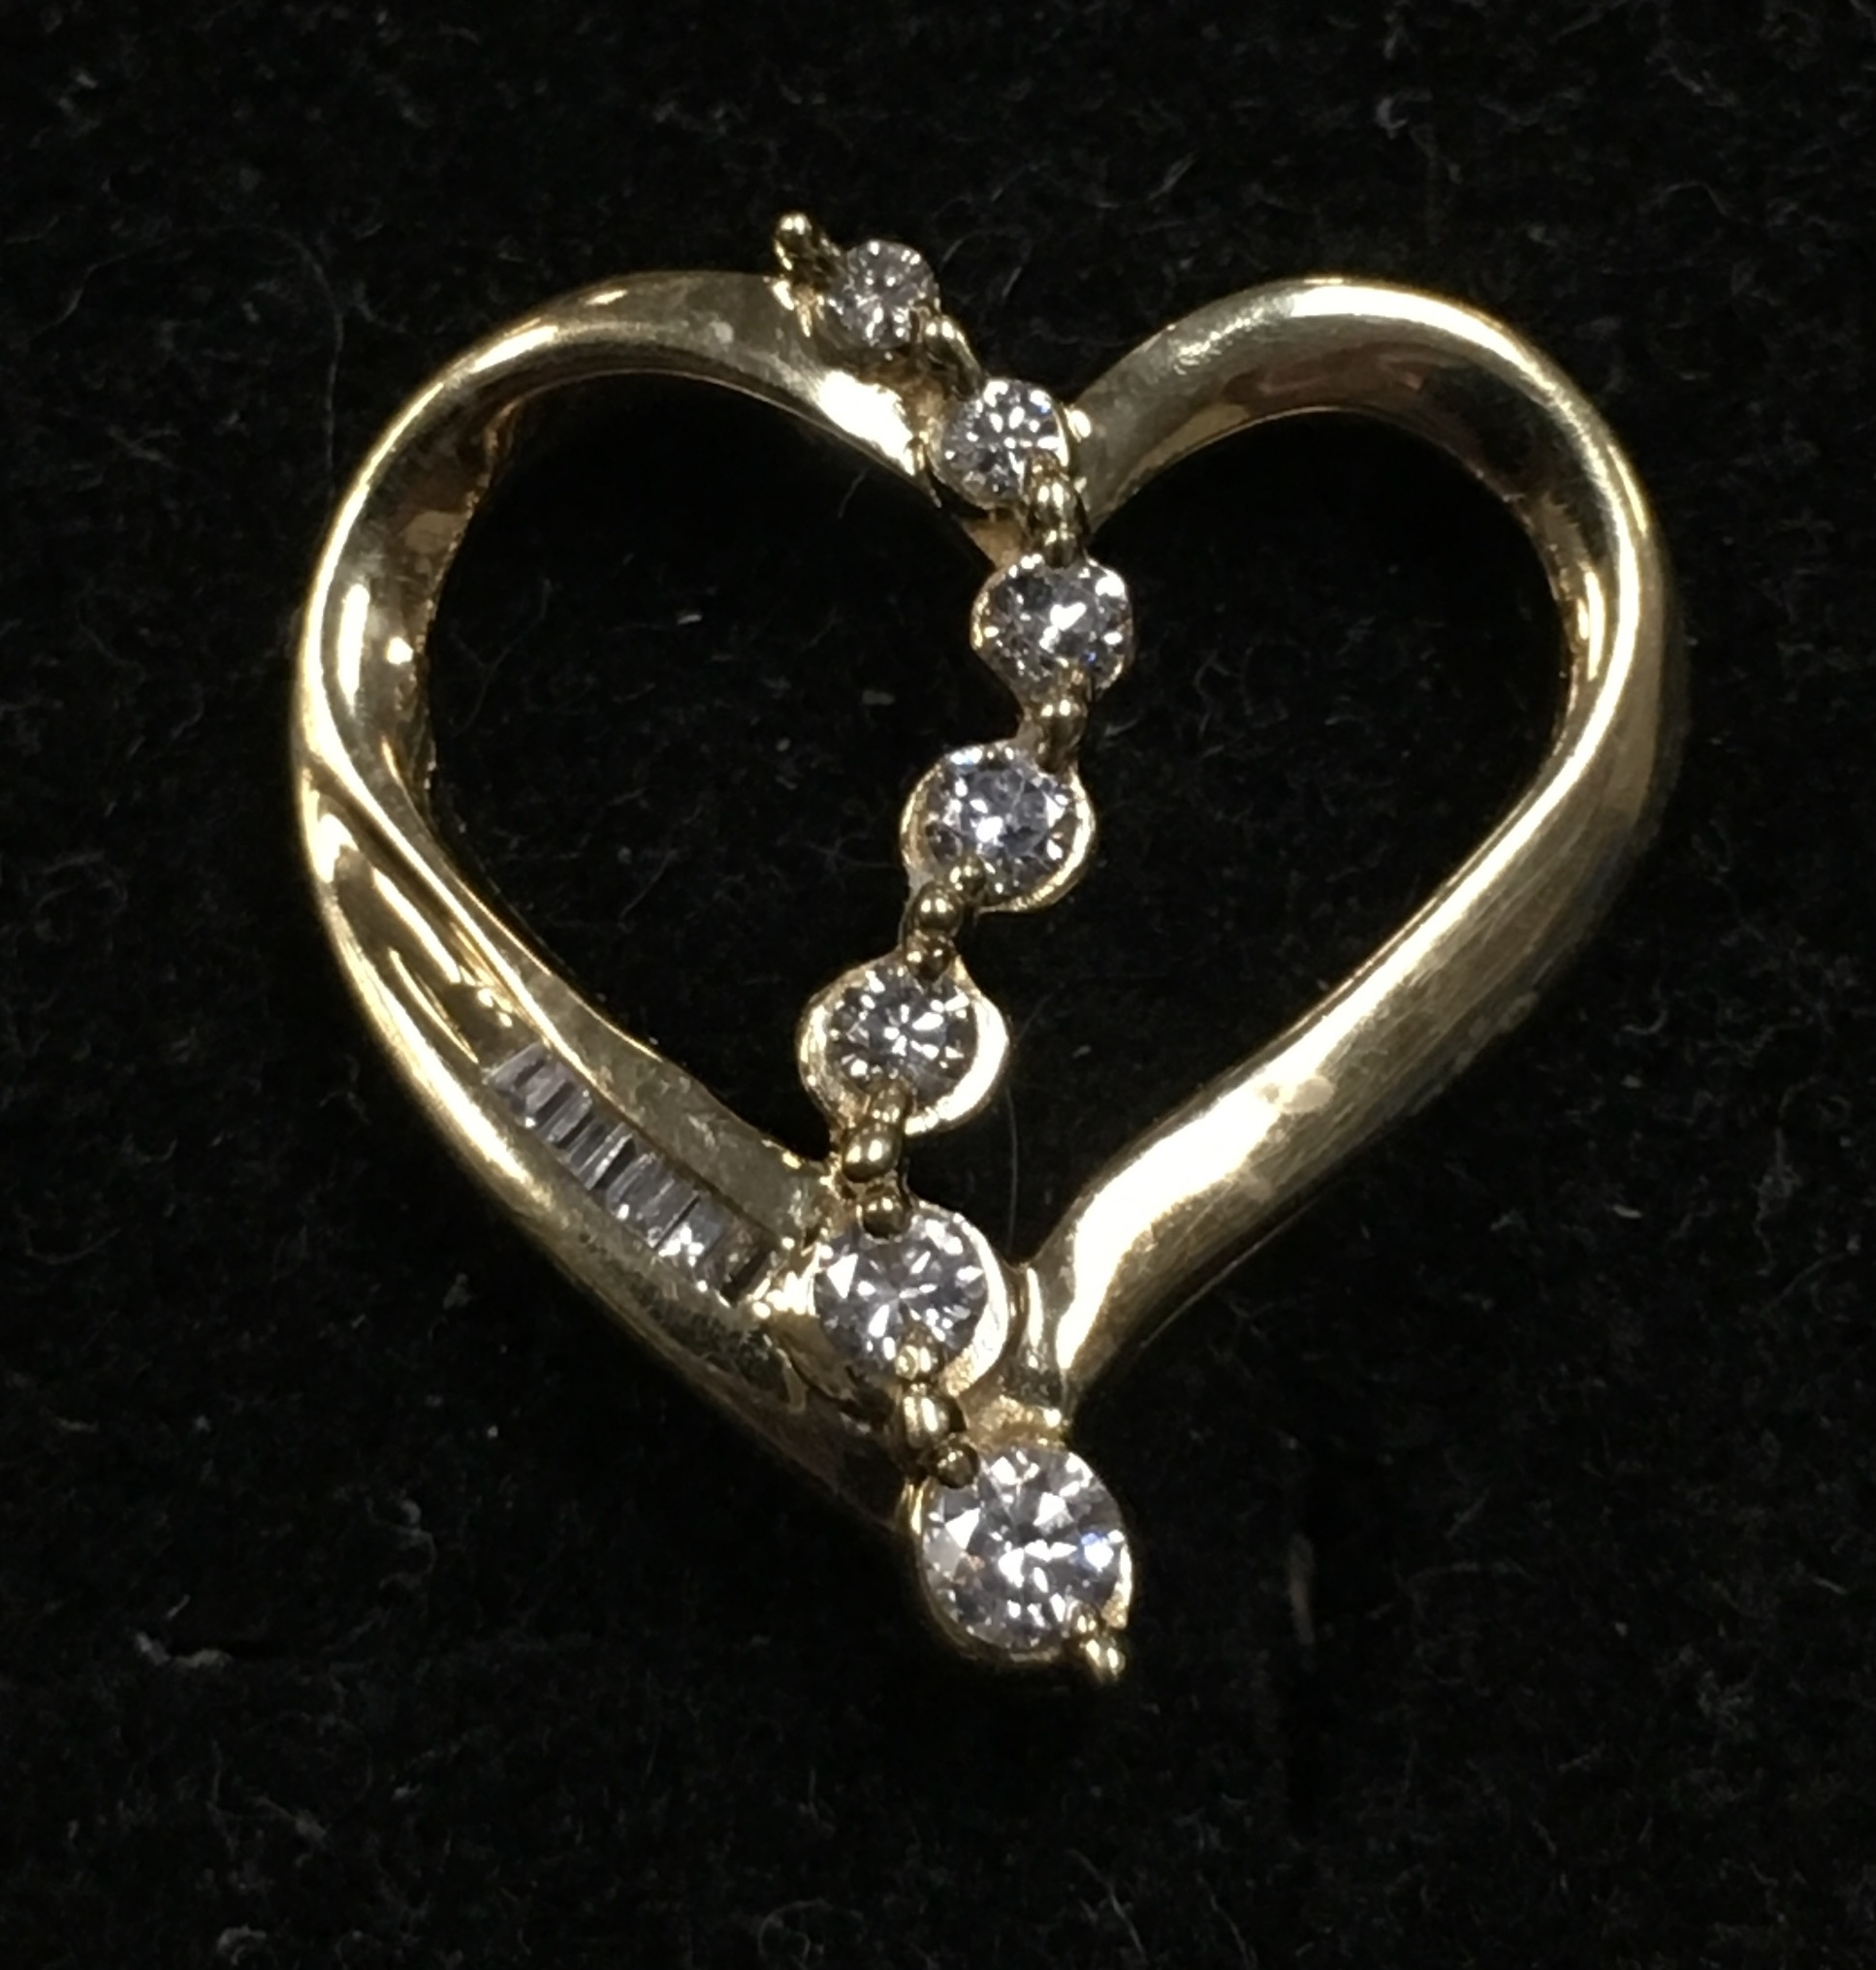 10KT YELLOW GOLD DIAMOND CHIP HEART CHARM.